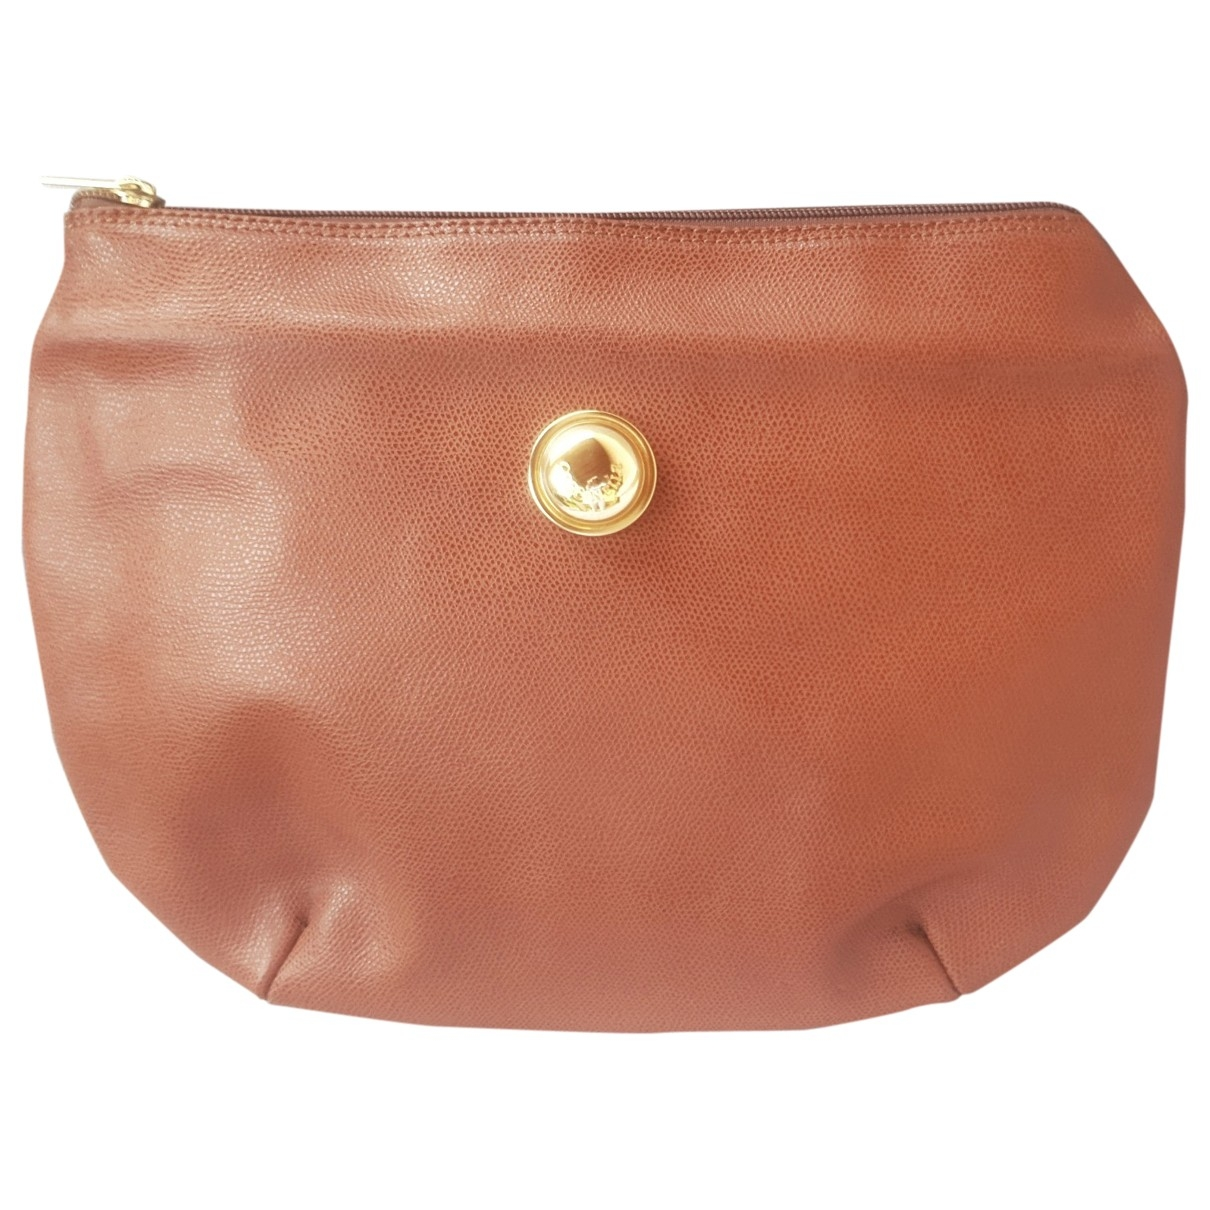 Coccinelle \N Brown Leather Clutch bag for Women \N